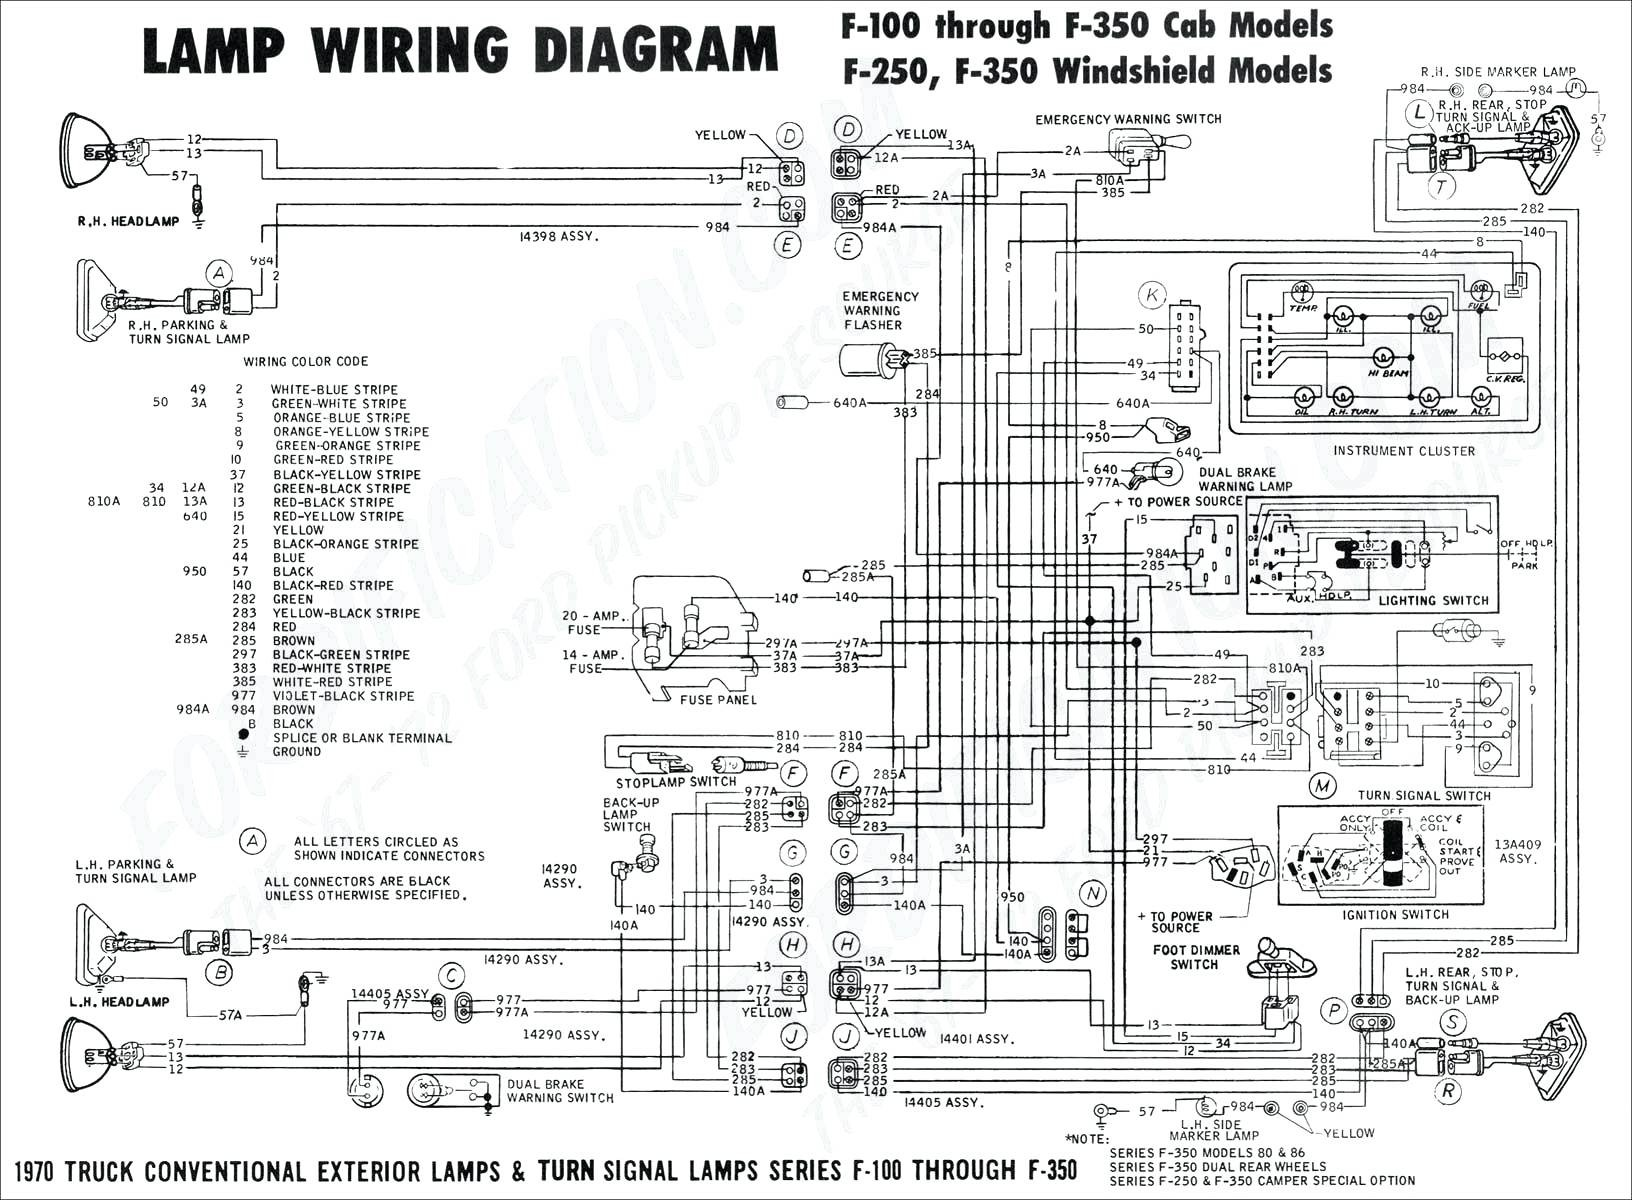 turn signal wiring diagram carrier electric furnace 90 mustang best library 2006 change your idea with 2001 stereo 2000